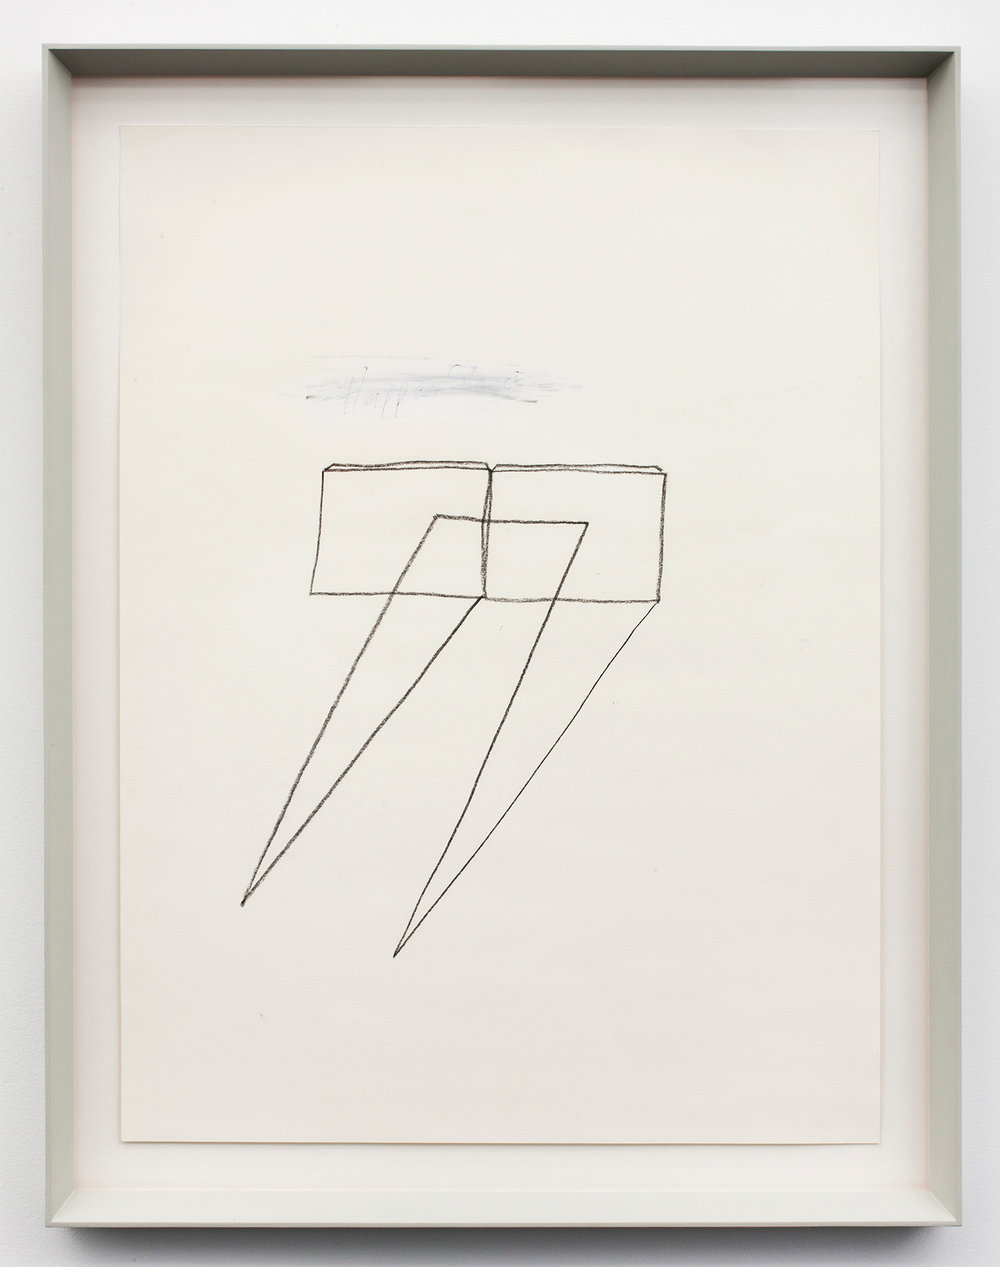 """Happen Stance_ . Graphite, ink, and correction fluid on paper.27.5"""" x 21.25"""". 2012."""